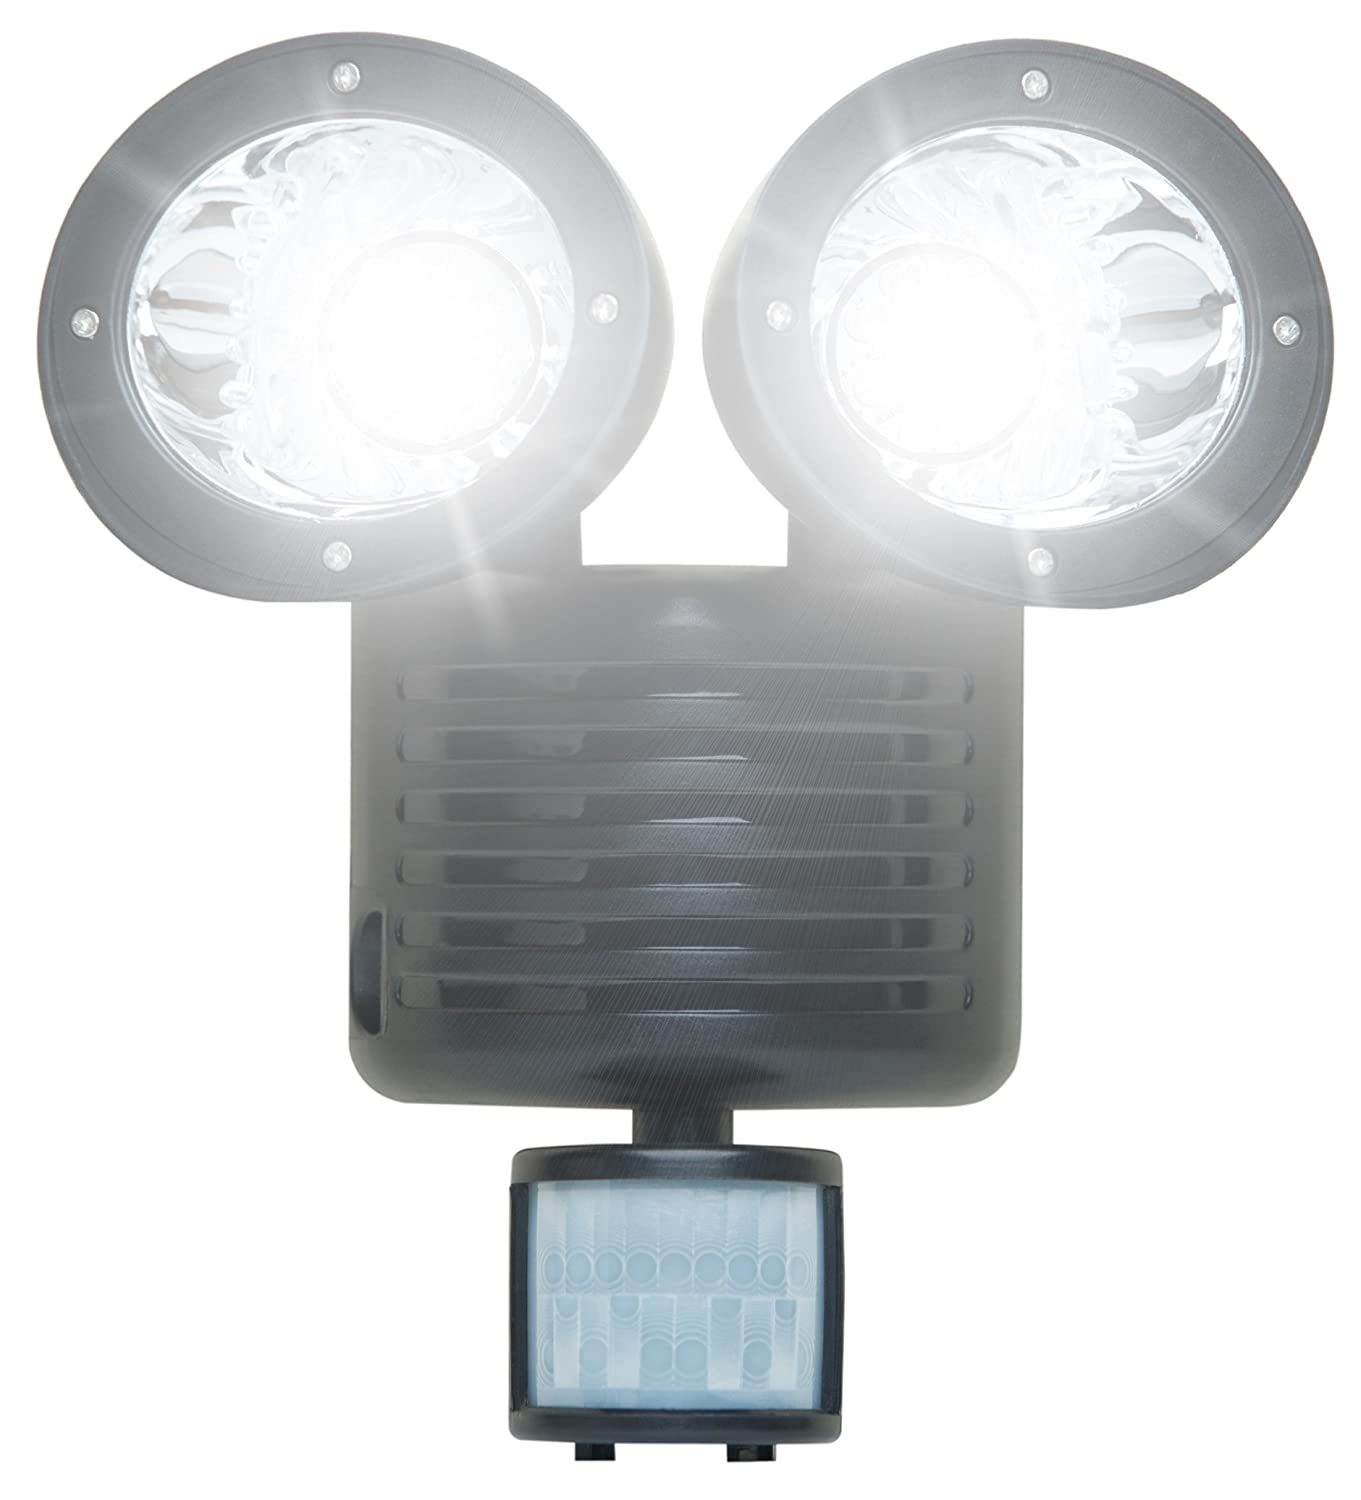 22 LED Solar Powered Security Light - Waterproof and comes with Built-in PIR Motion and Night Sensor - Lamp for Outdoor, Garden, Fence, Patio, Yard, Walkway, Driveway, Stairs, Outside, Wall, Garage, Shed, Path by SPV Lights: The Solar Lights & Solar L